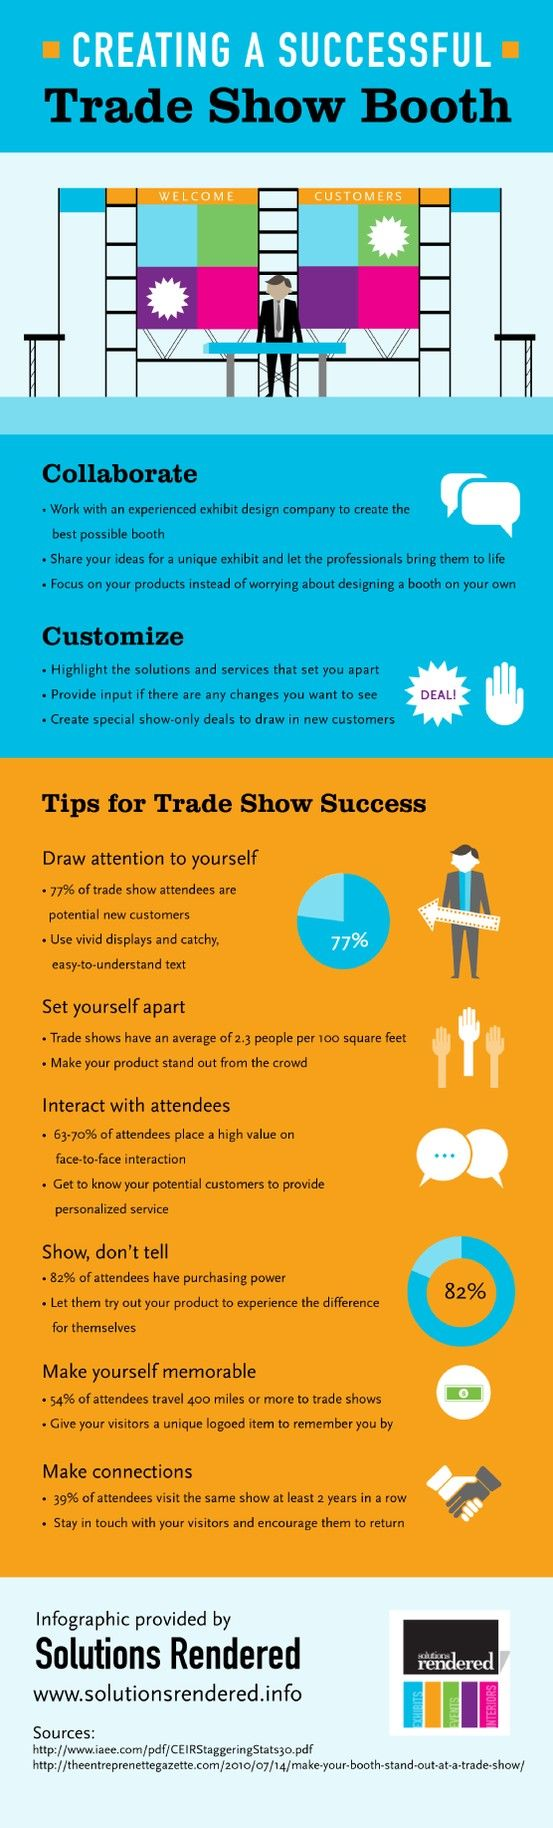 Tips for Tradeshow successs